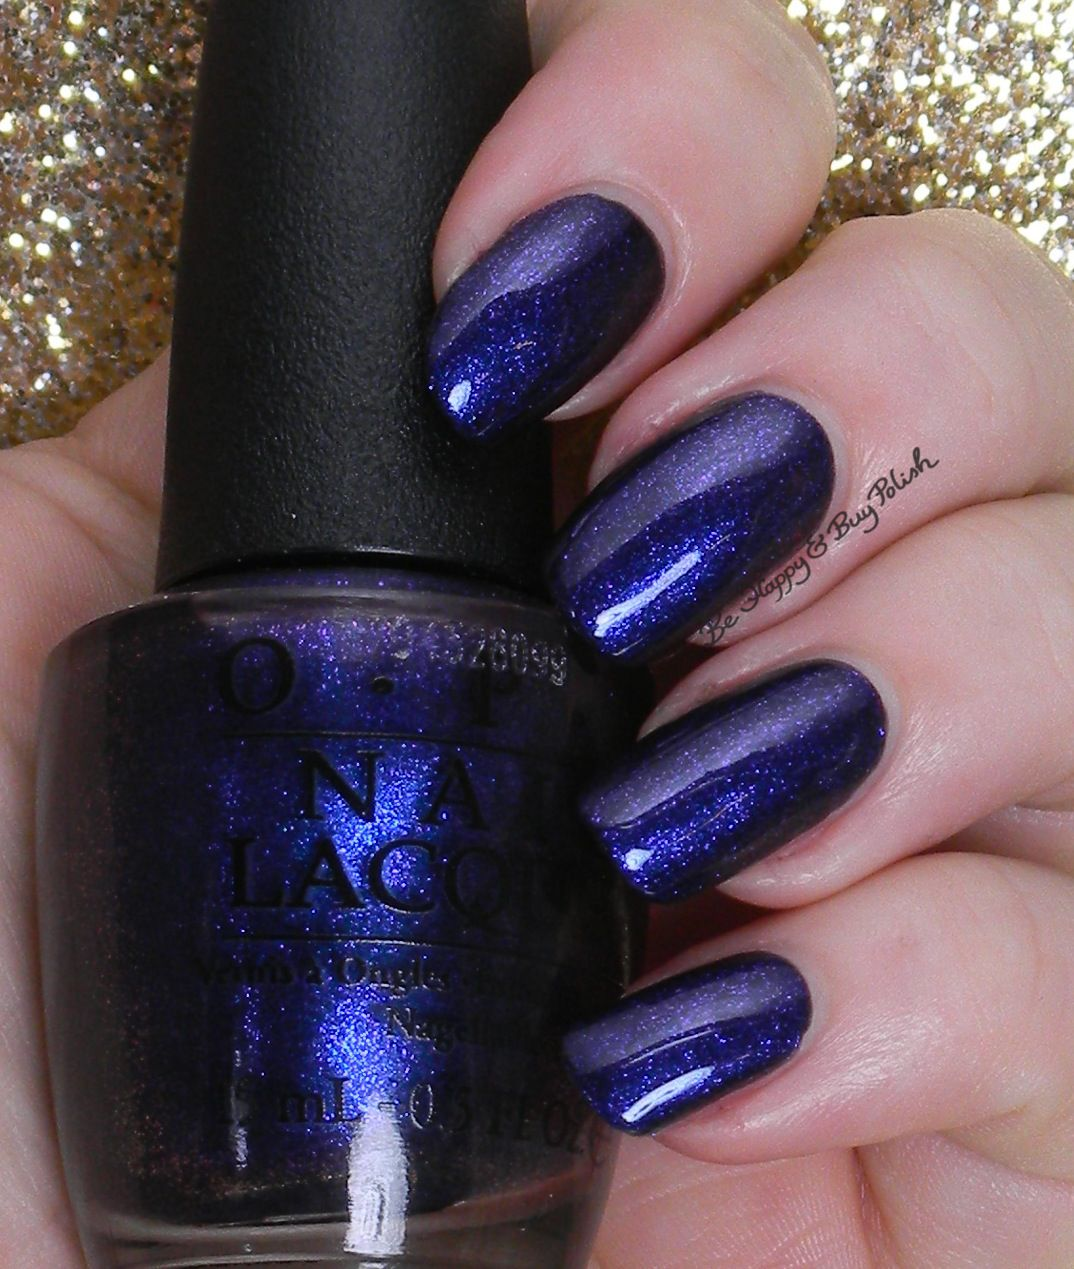 OPI miscellaneous nail polishes swatches | OPI and Swatch